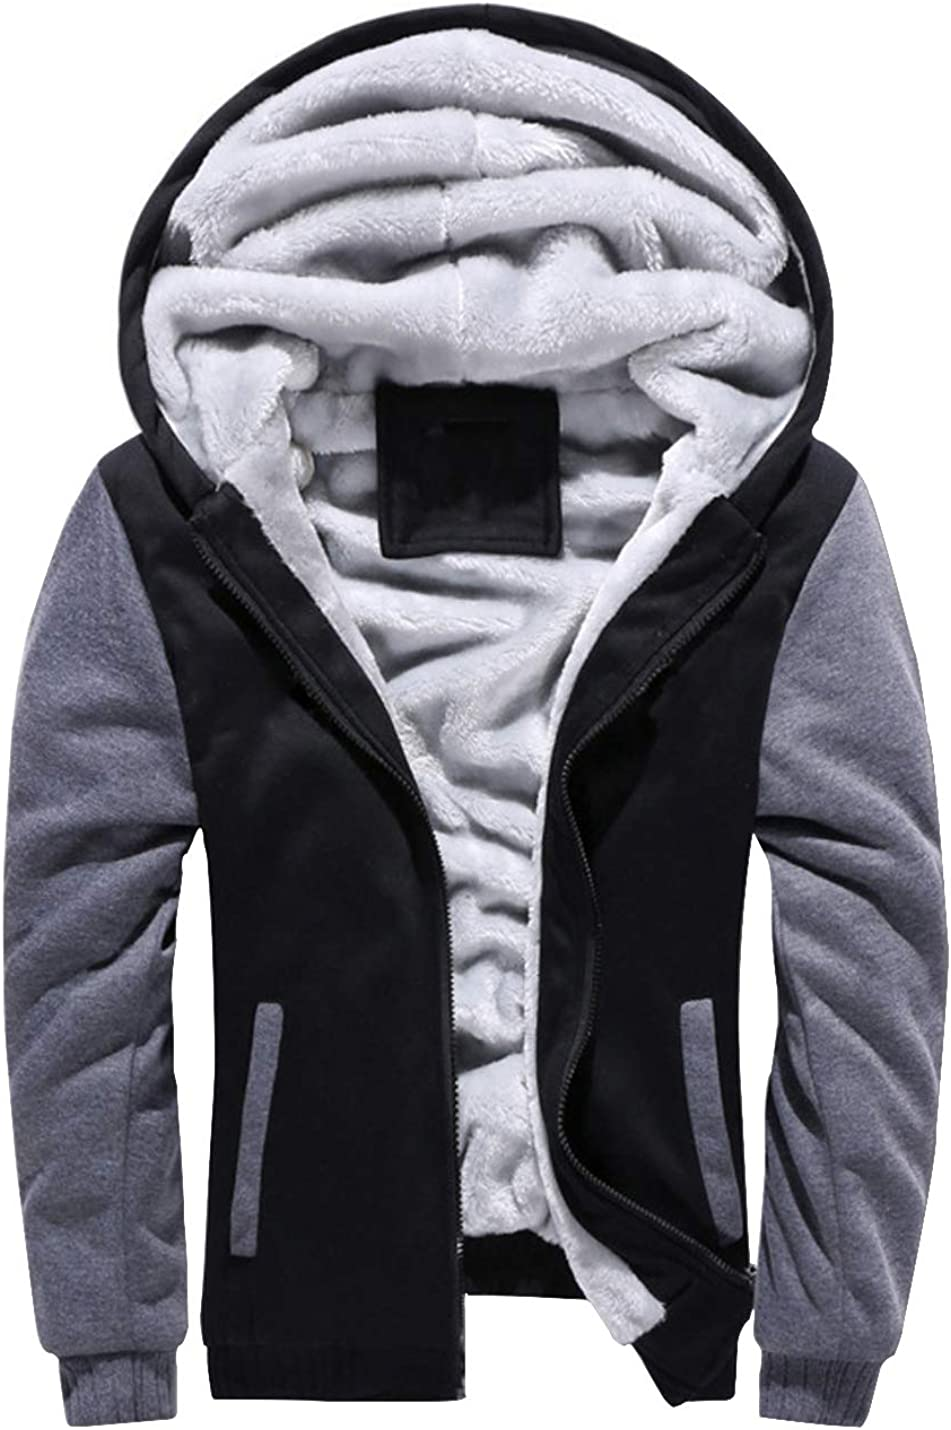 Hongsui Men's Winter Plus Velvet Padded Zipper Free shipping anywhere in the nation New product! New type Warm Hooded Sweat